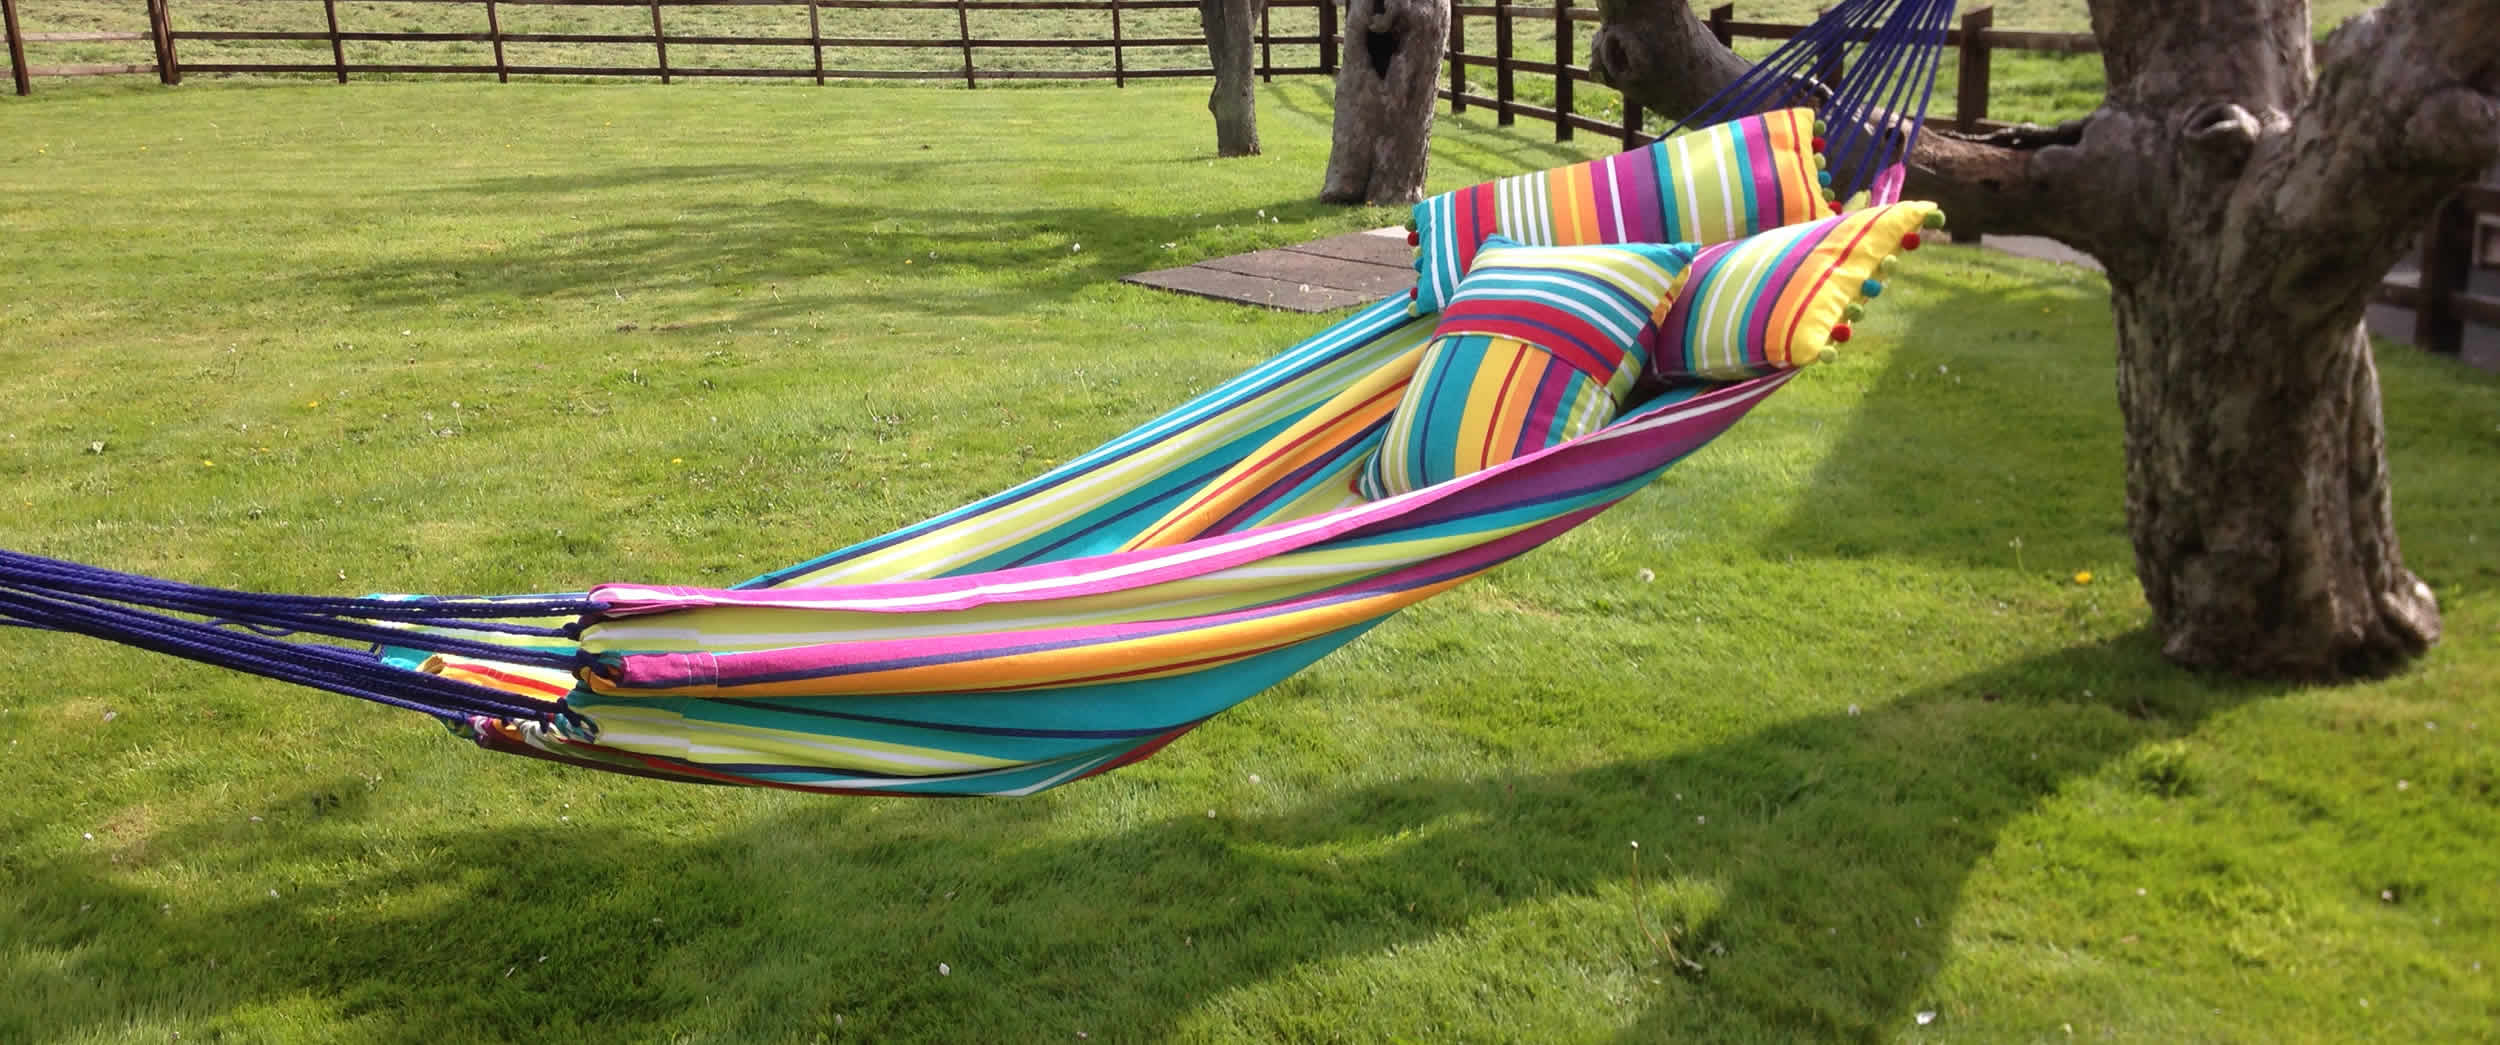 Striped Hammocks | Garden Hammocks | Indoor Hammock | Deckchairstripes - Hammocks